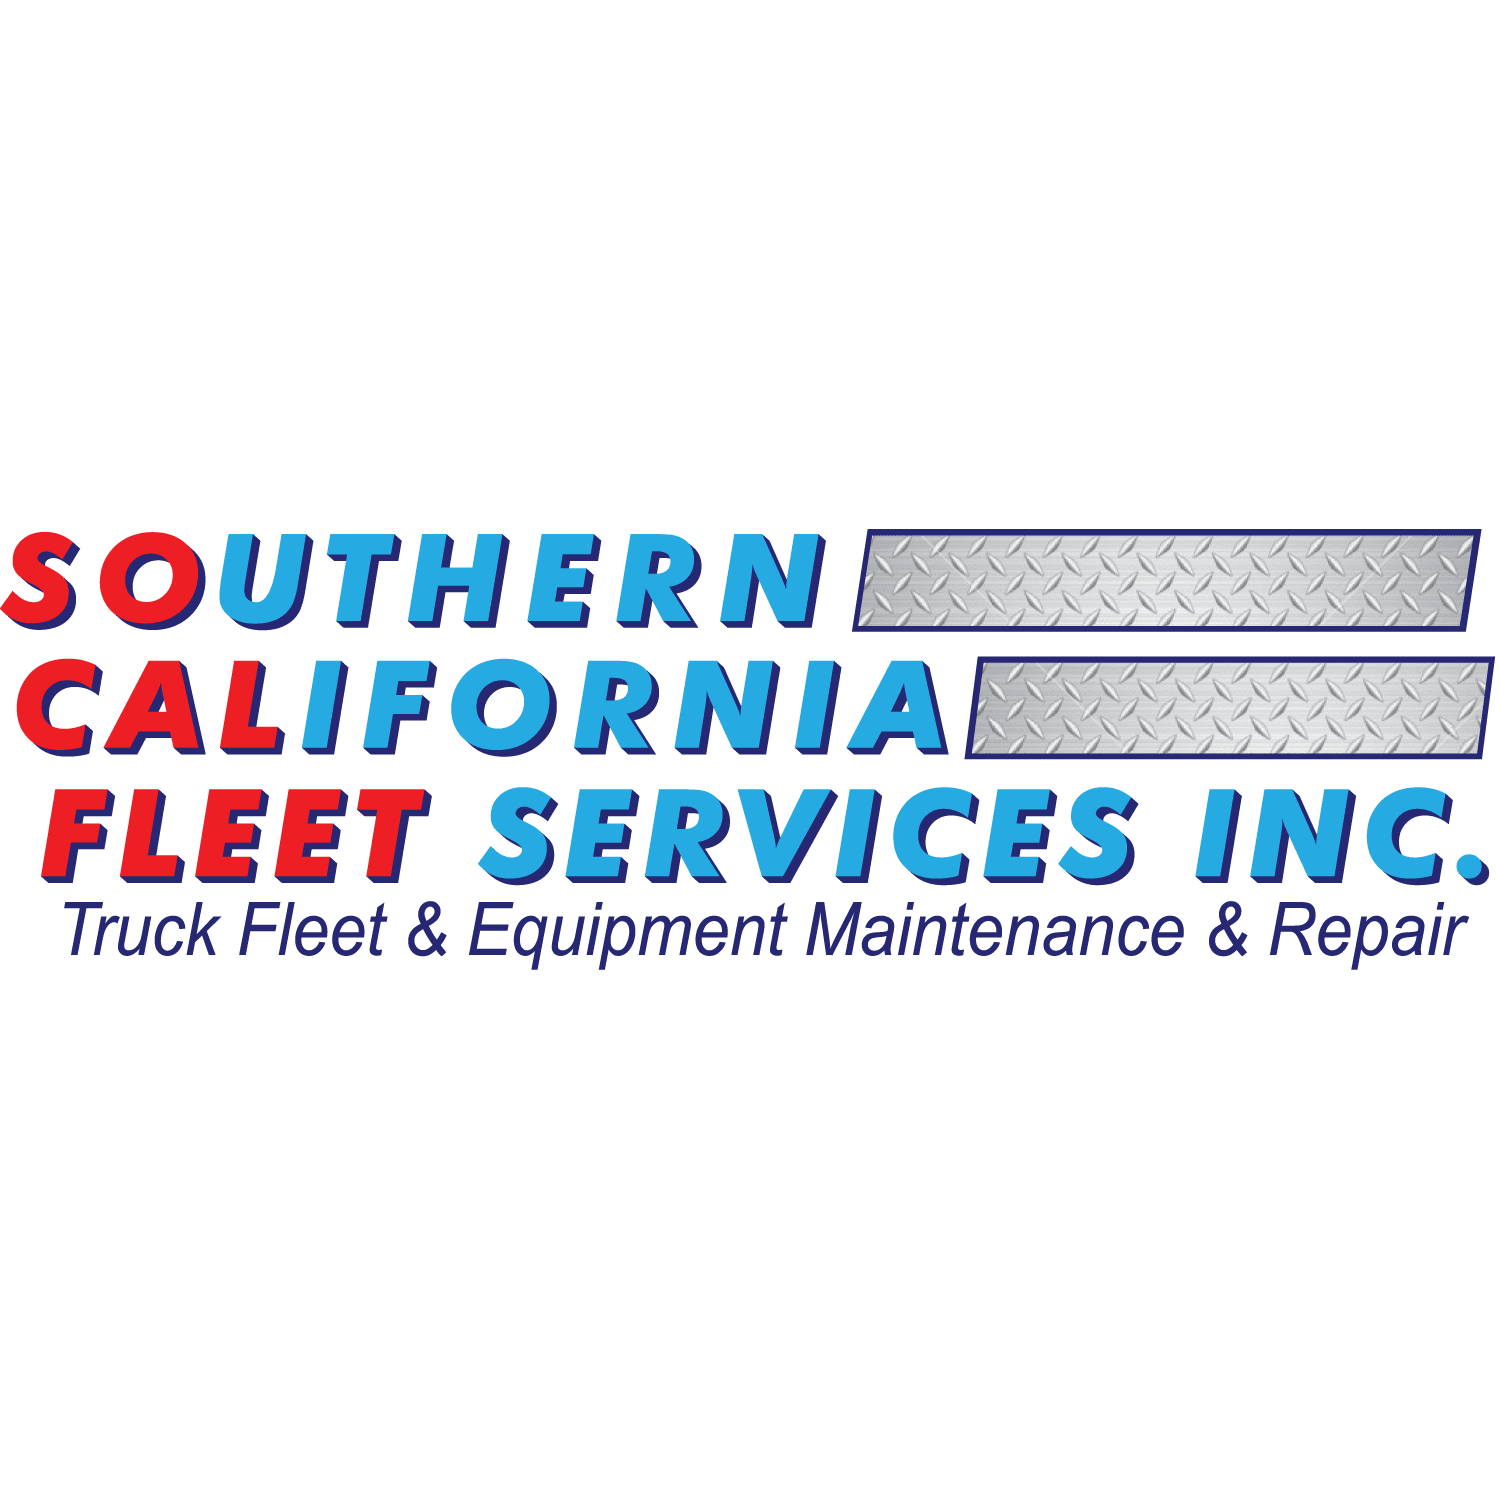 Southern California Fleet Services INC.